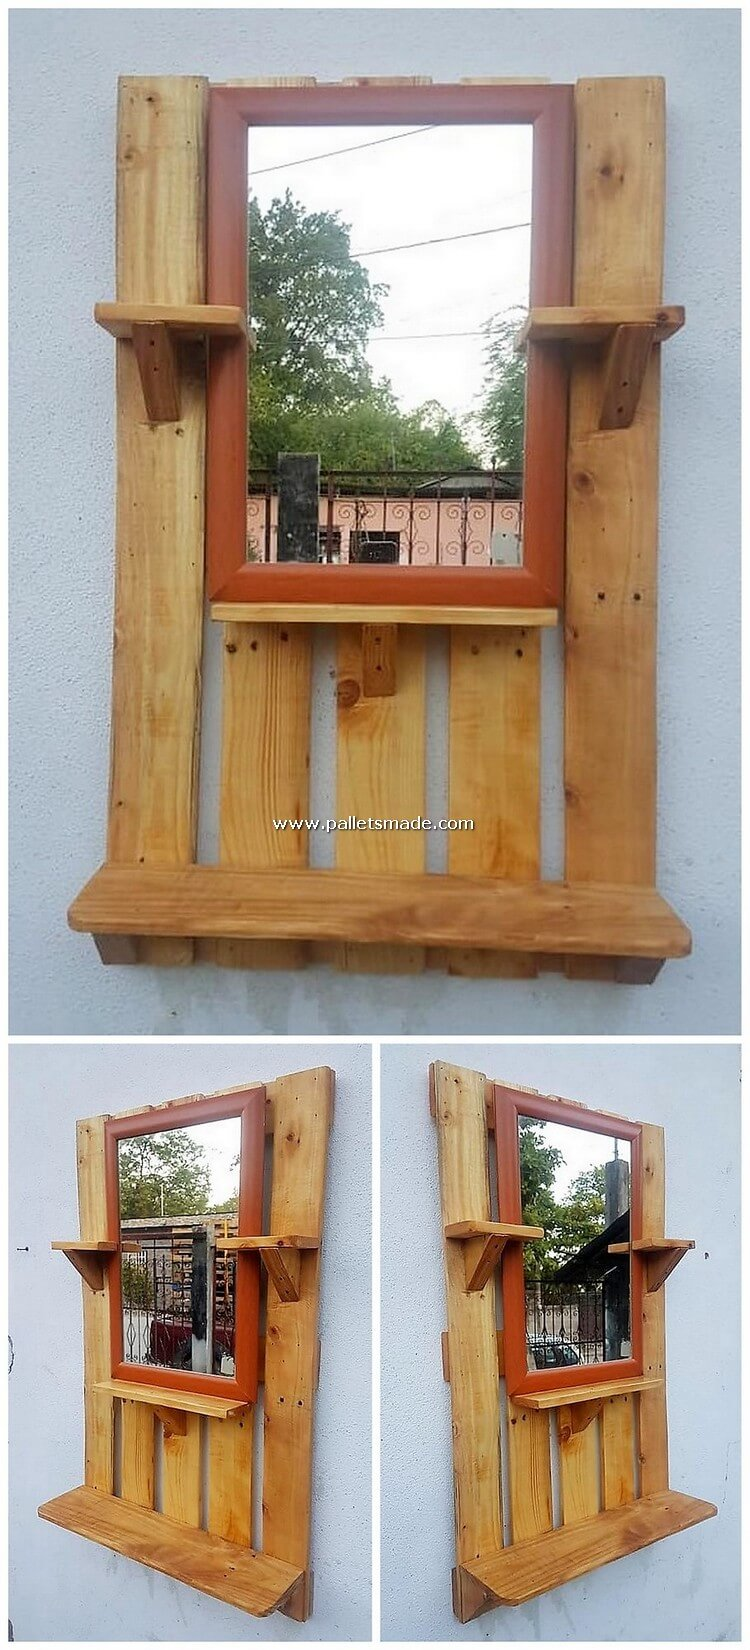 Pallet Mirror Frame with Shelf